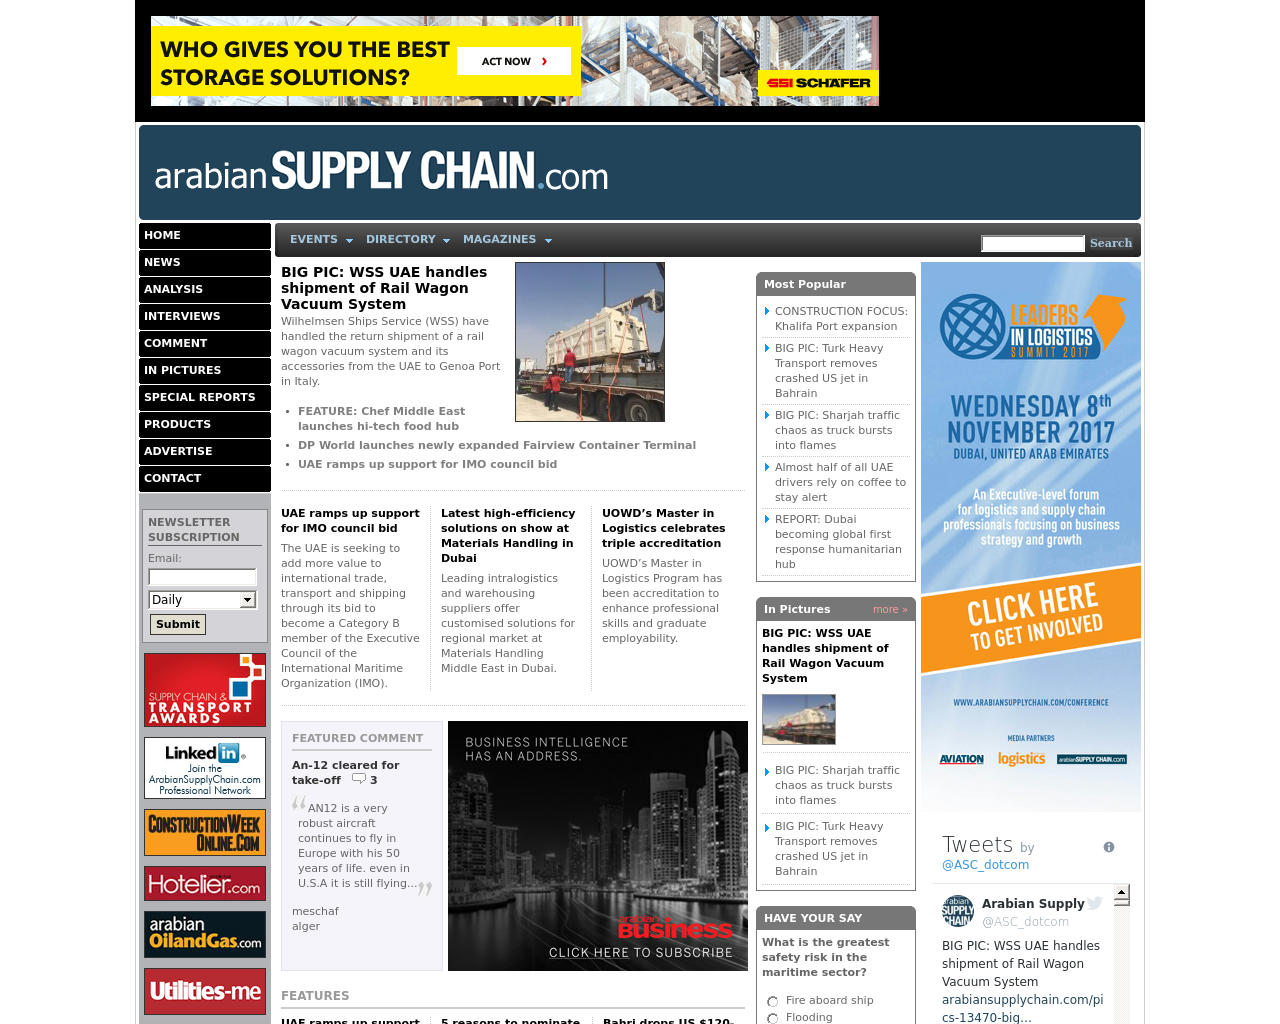 Arabian-SUPPLY-CHAIN.com-Advertising-Reviews-Pricing